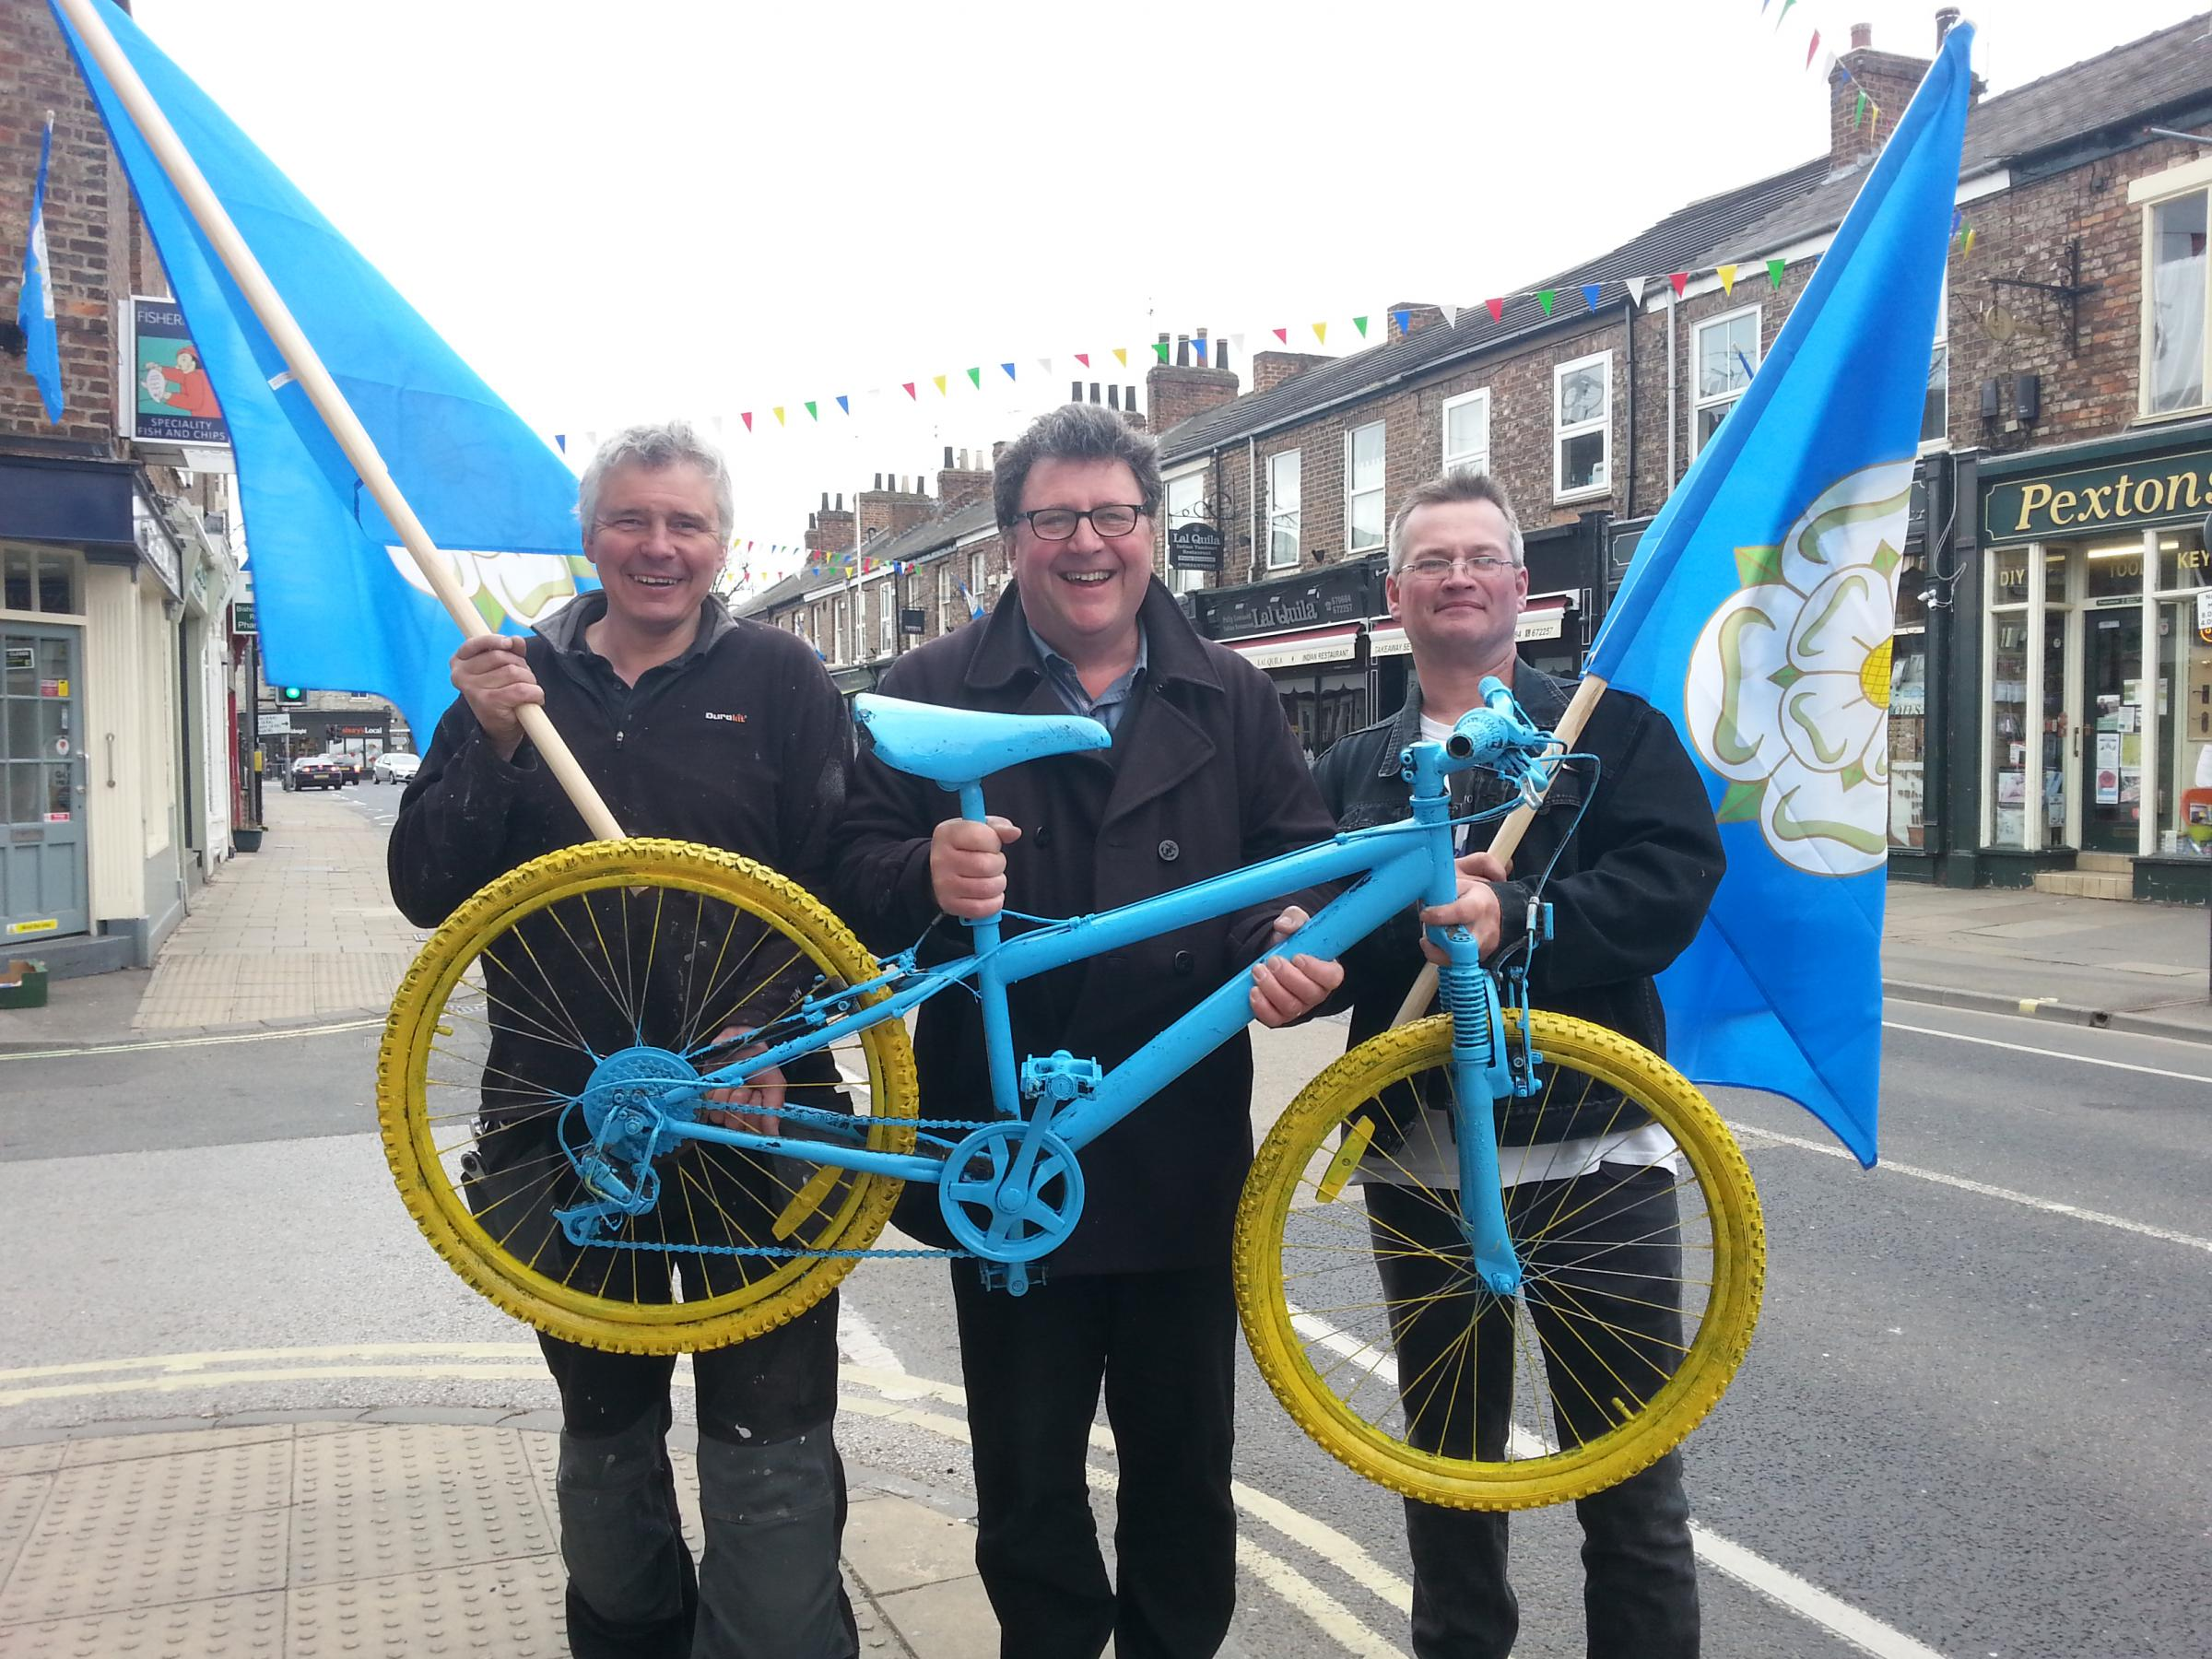 READY TO PARTY: Dave Wilson, Johnny Hayes and Chris Reed helped decorate Bishopthorpe Road